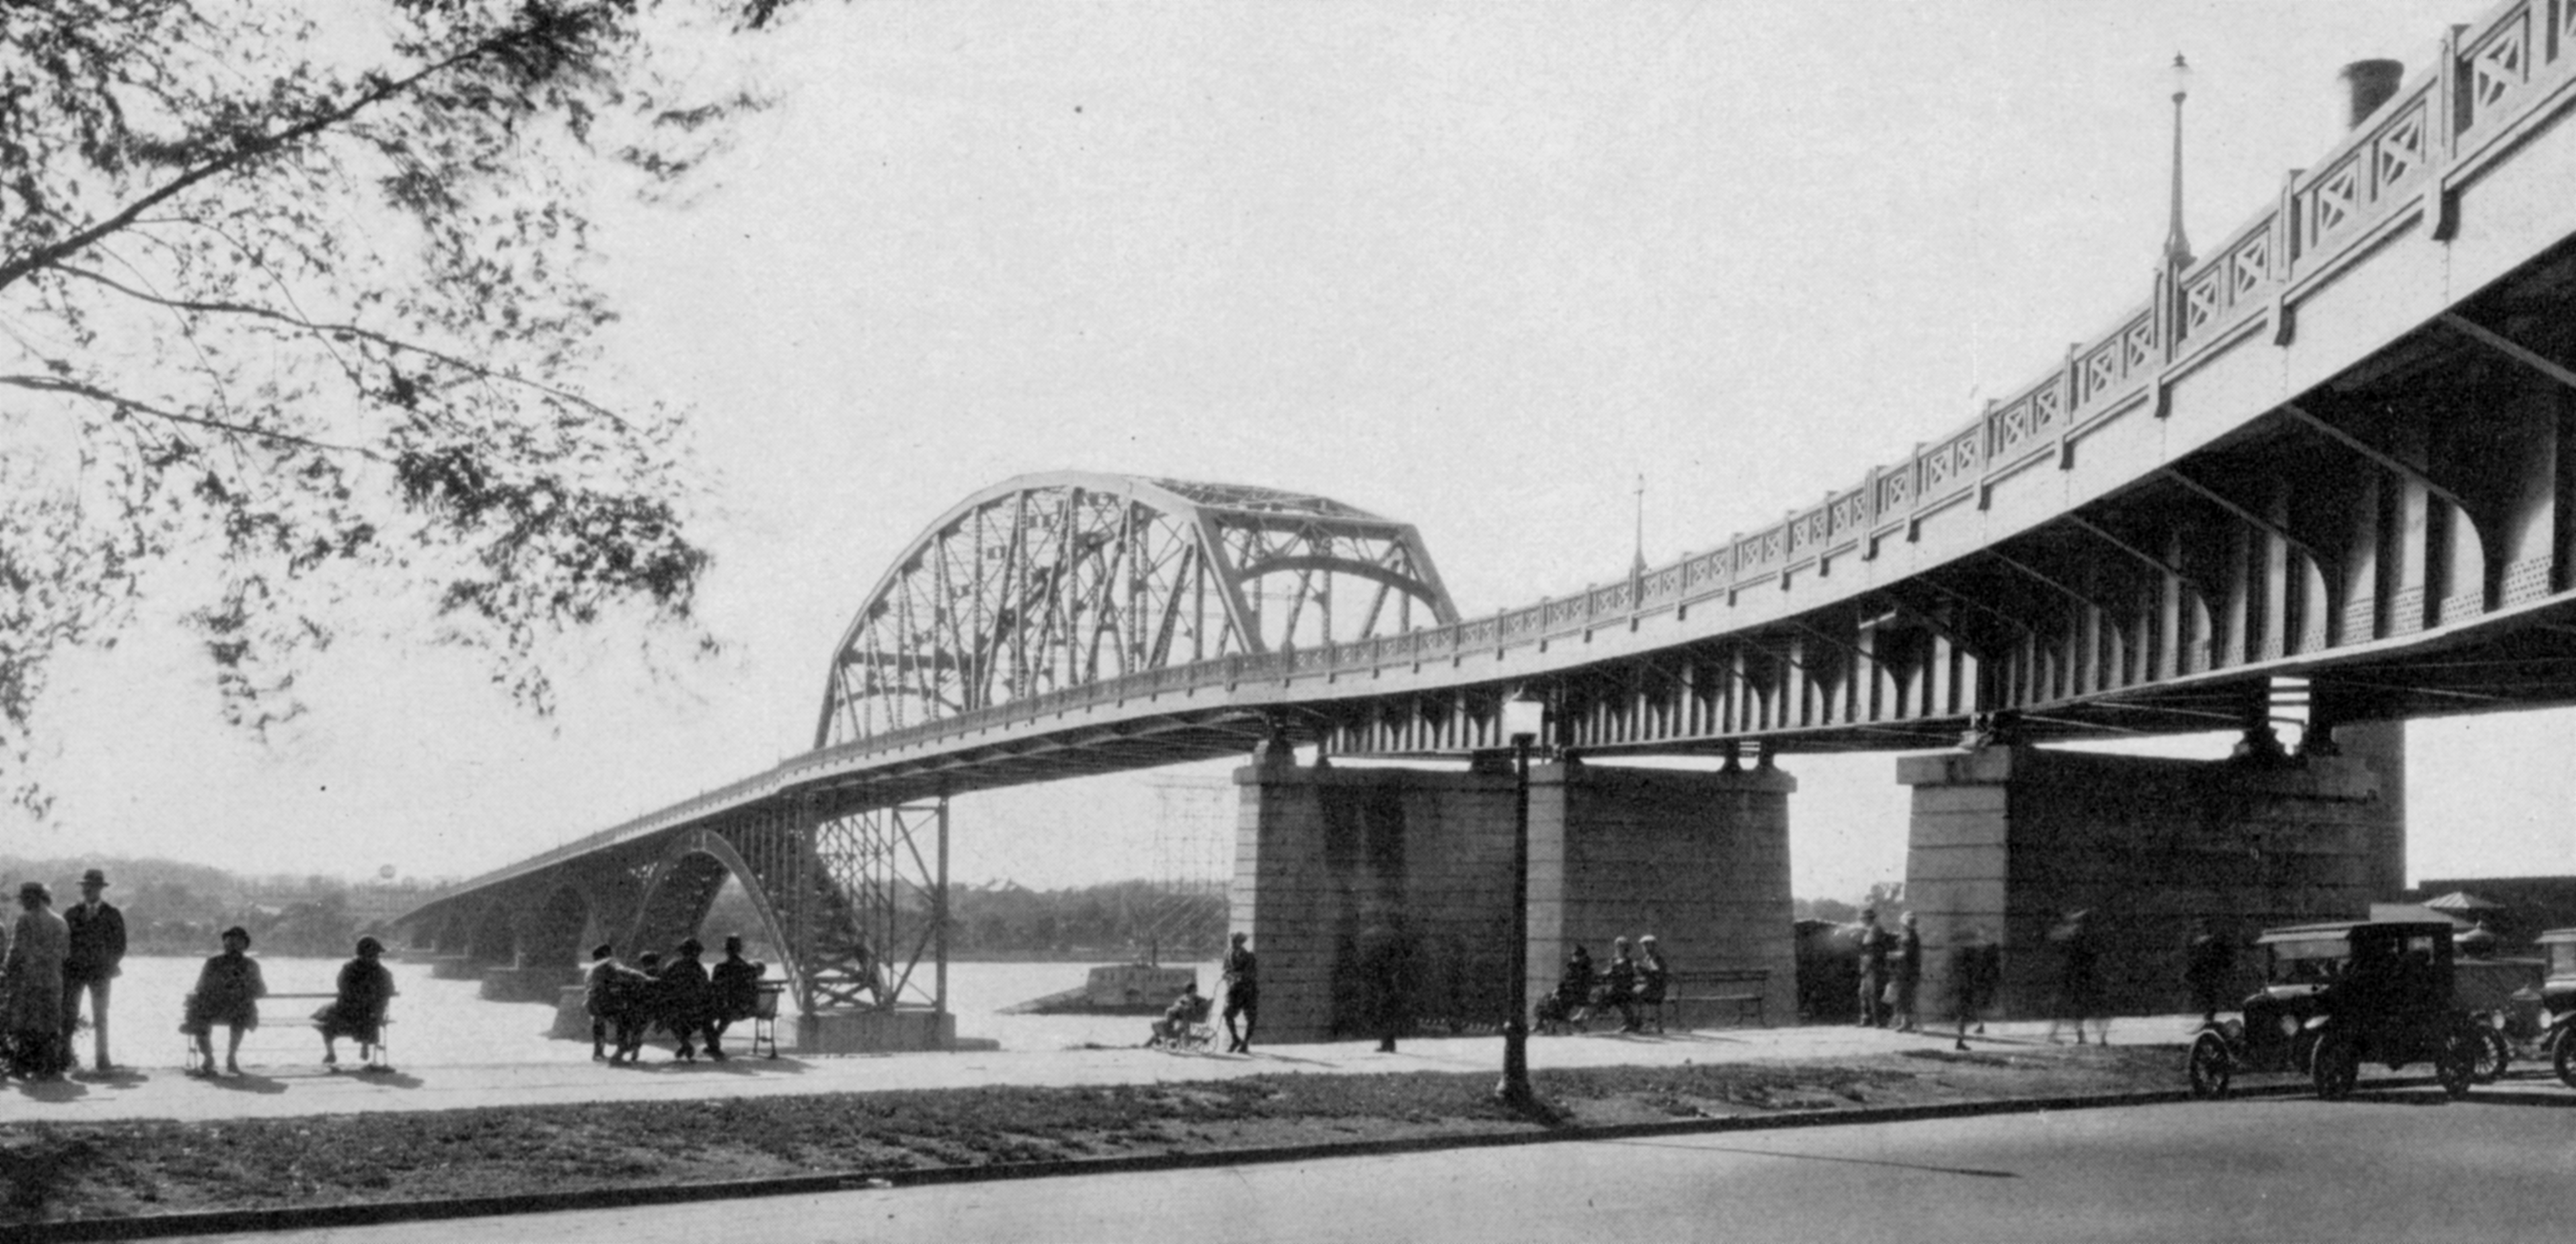 The Peace Bridge, shortly after it opened in the late '20s. Buffalo's old municipal water intake is visible between the piers of the bridge. This structure fed water to the Massachusetts Avenue Pumping Station to supply water to the City of Buffalo. (Buffalo Stories archives)